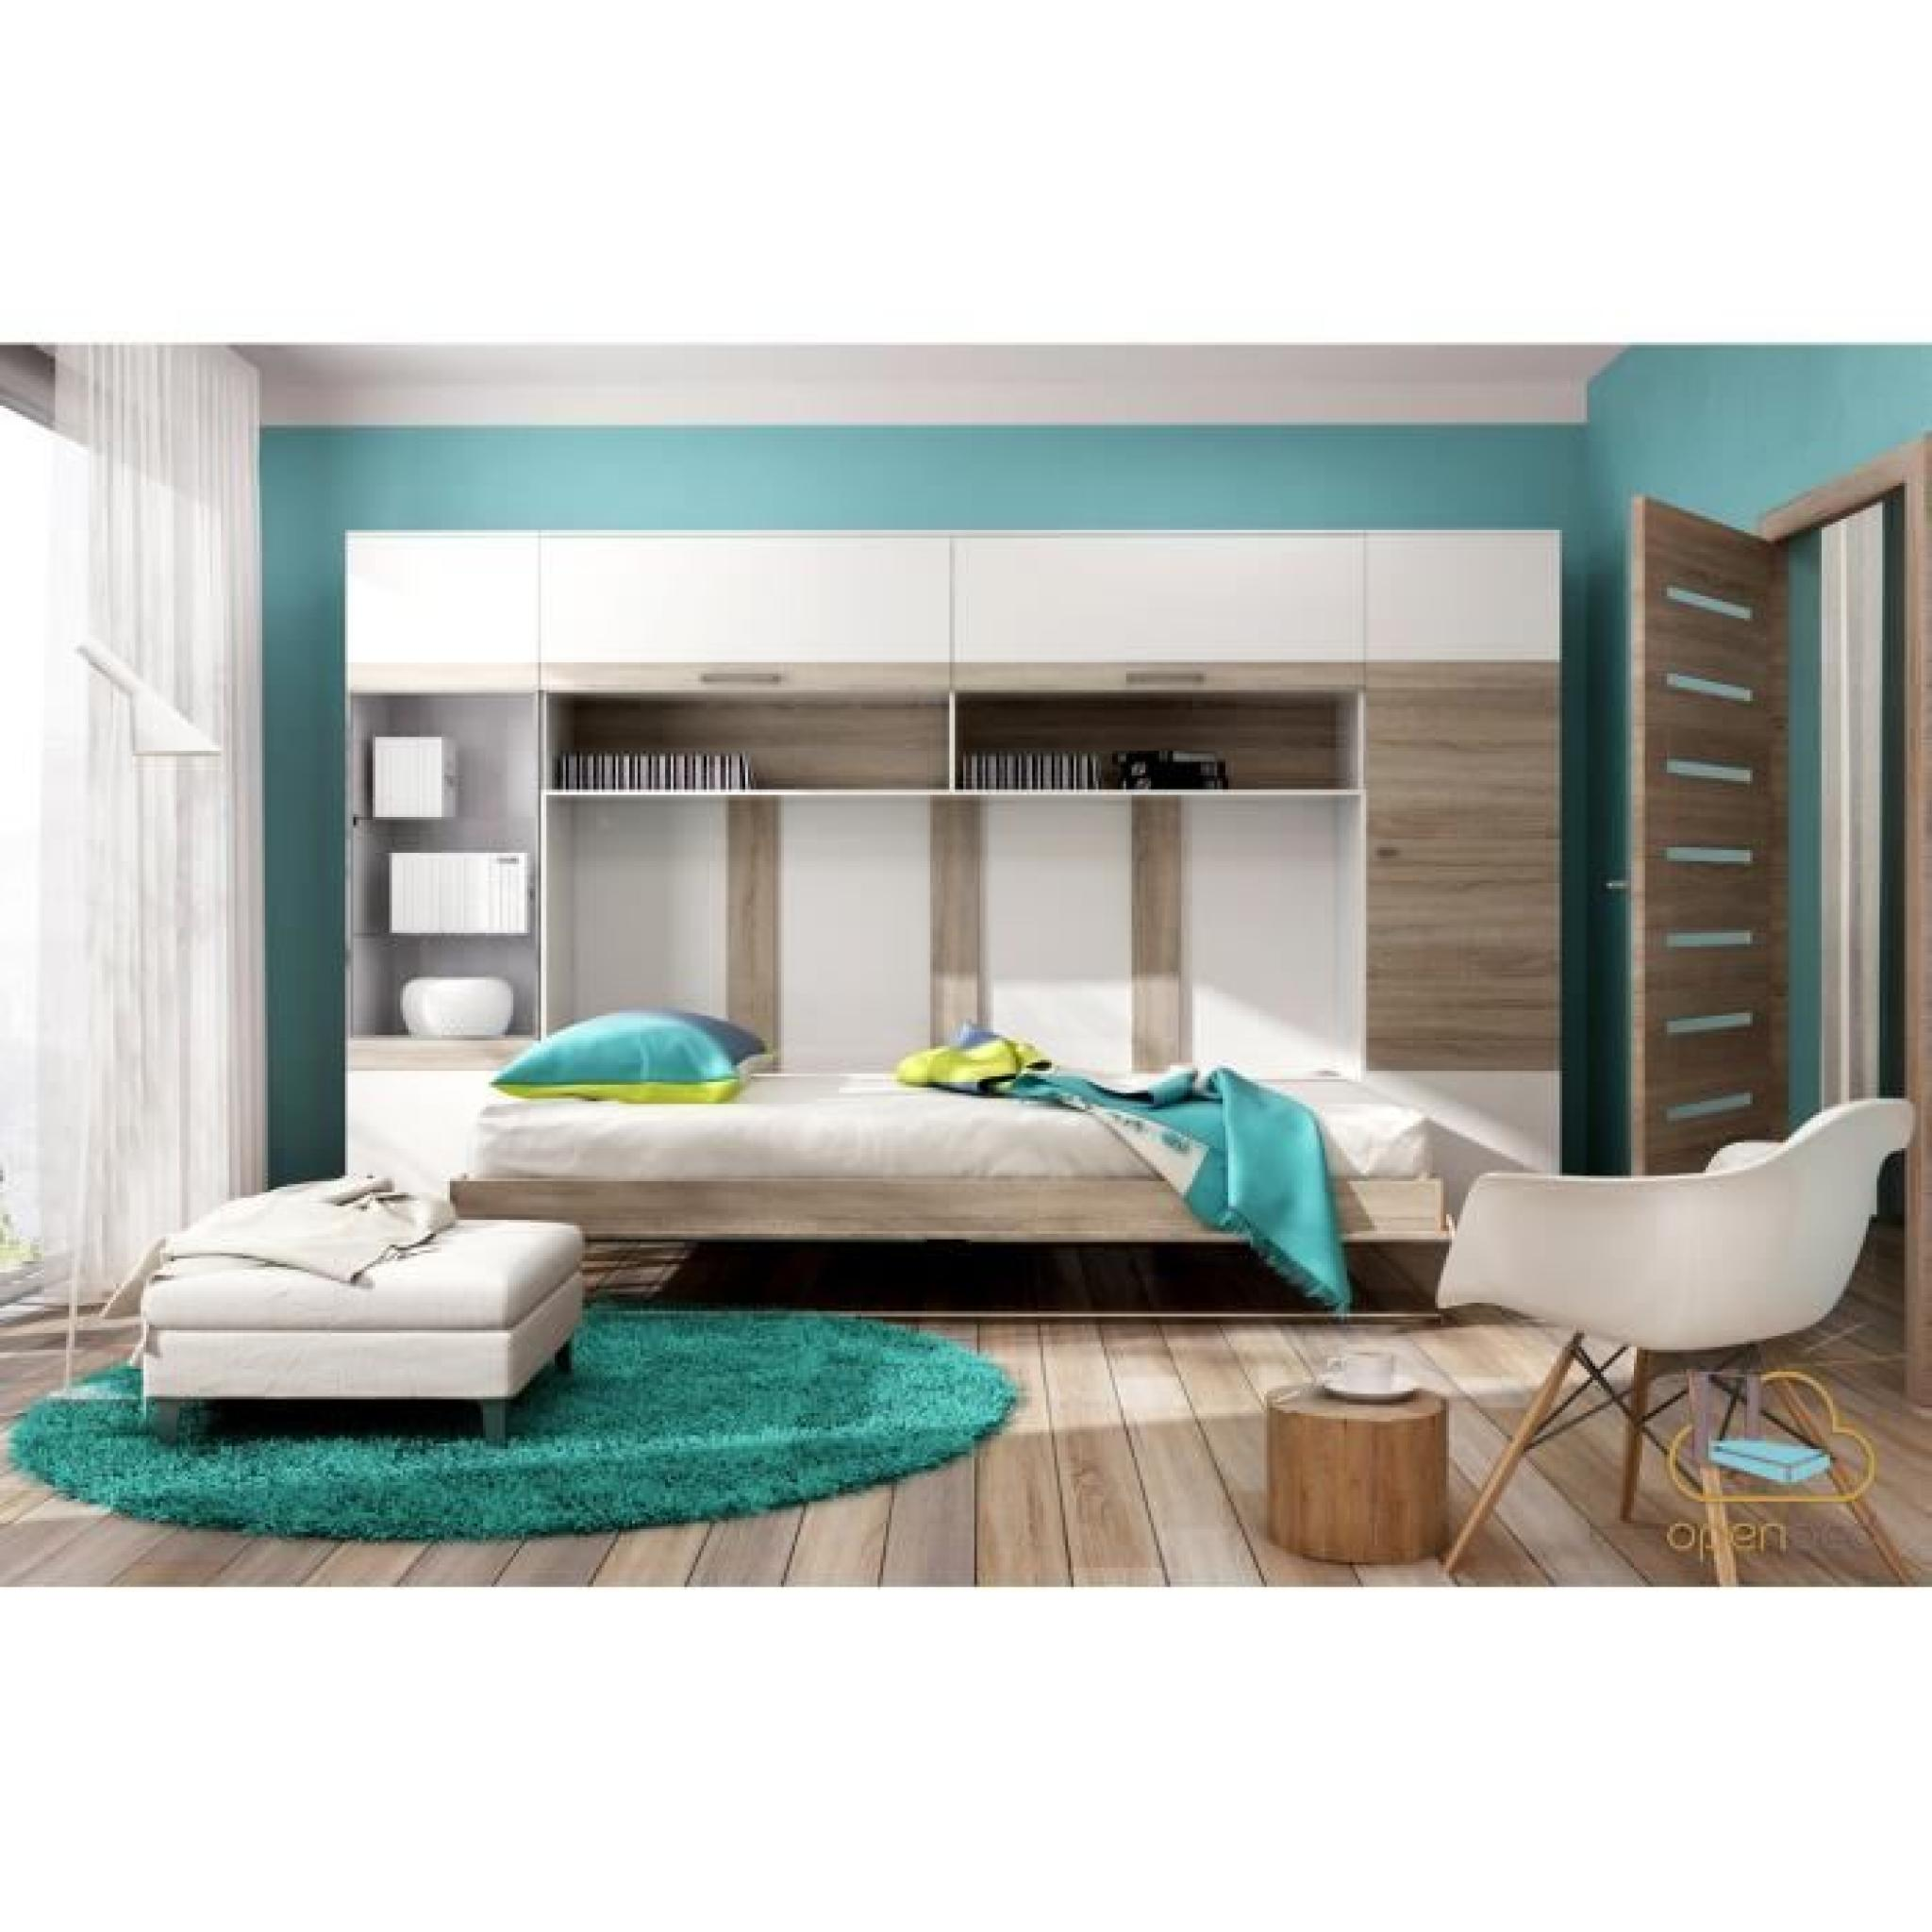 lit escamotable horizontal faro bi color achat vente lit escamotable pas cher couleur et. Black Bedroom Furniture Sets. Home Design Ideas